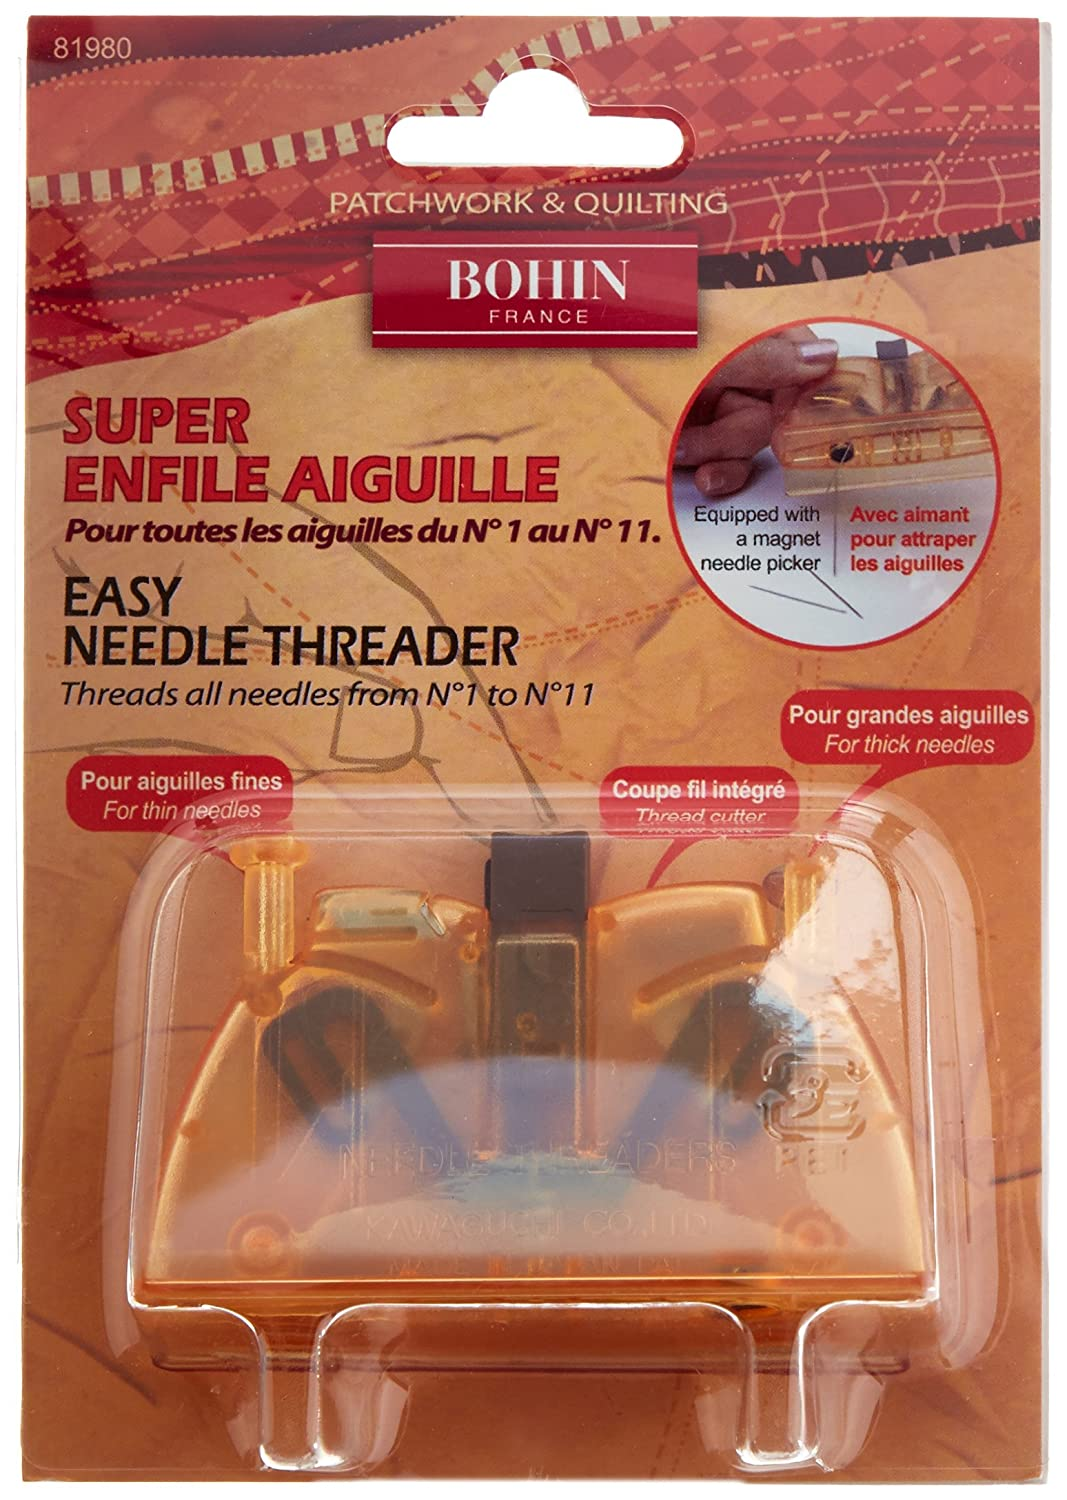 Bohin Super Automatic Needle Threader 81980